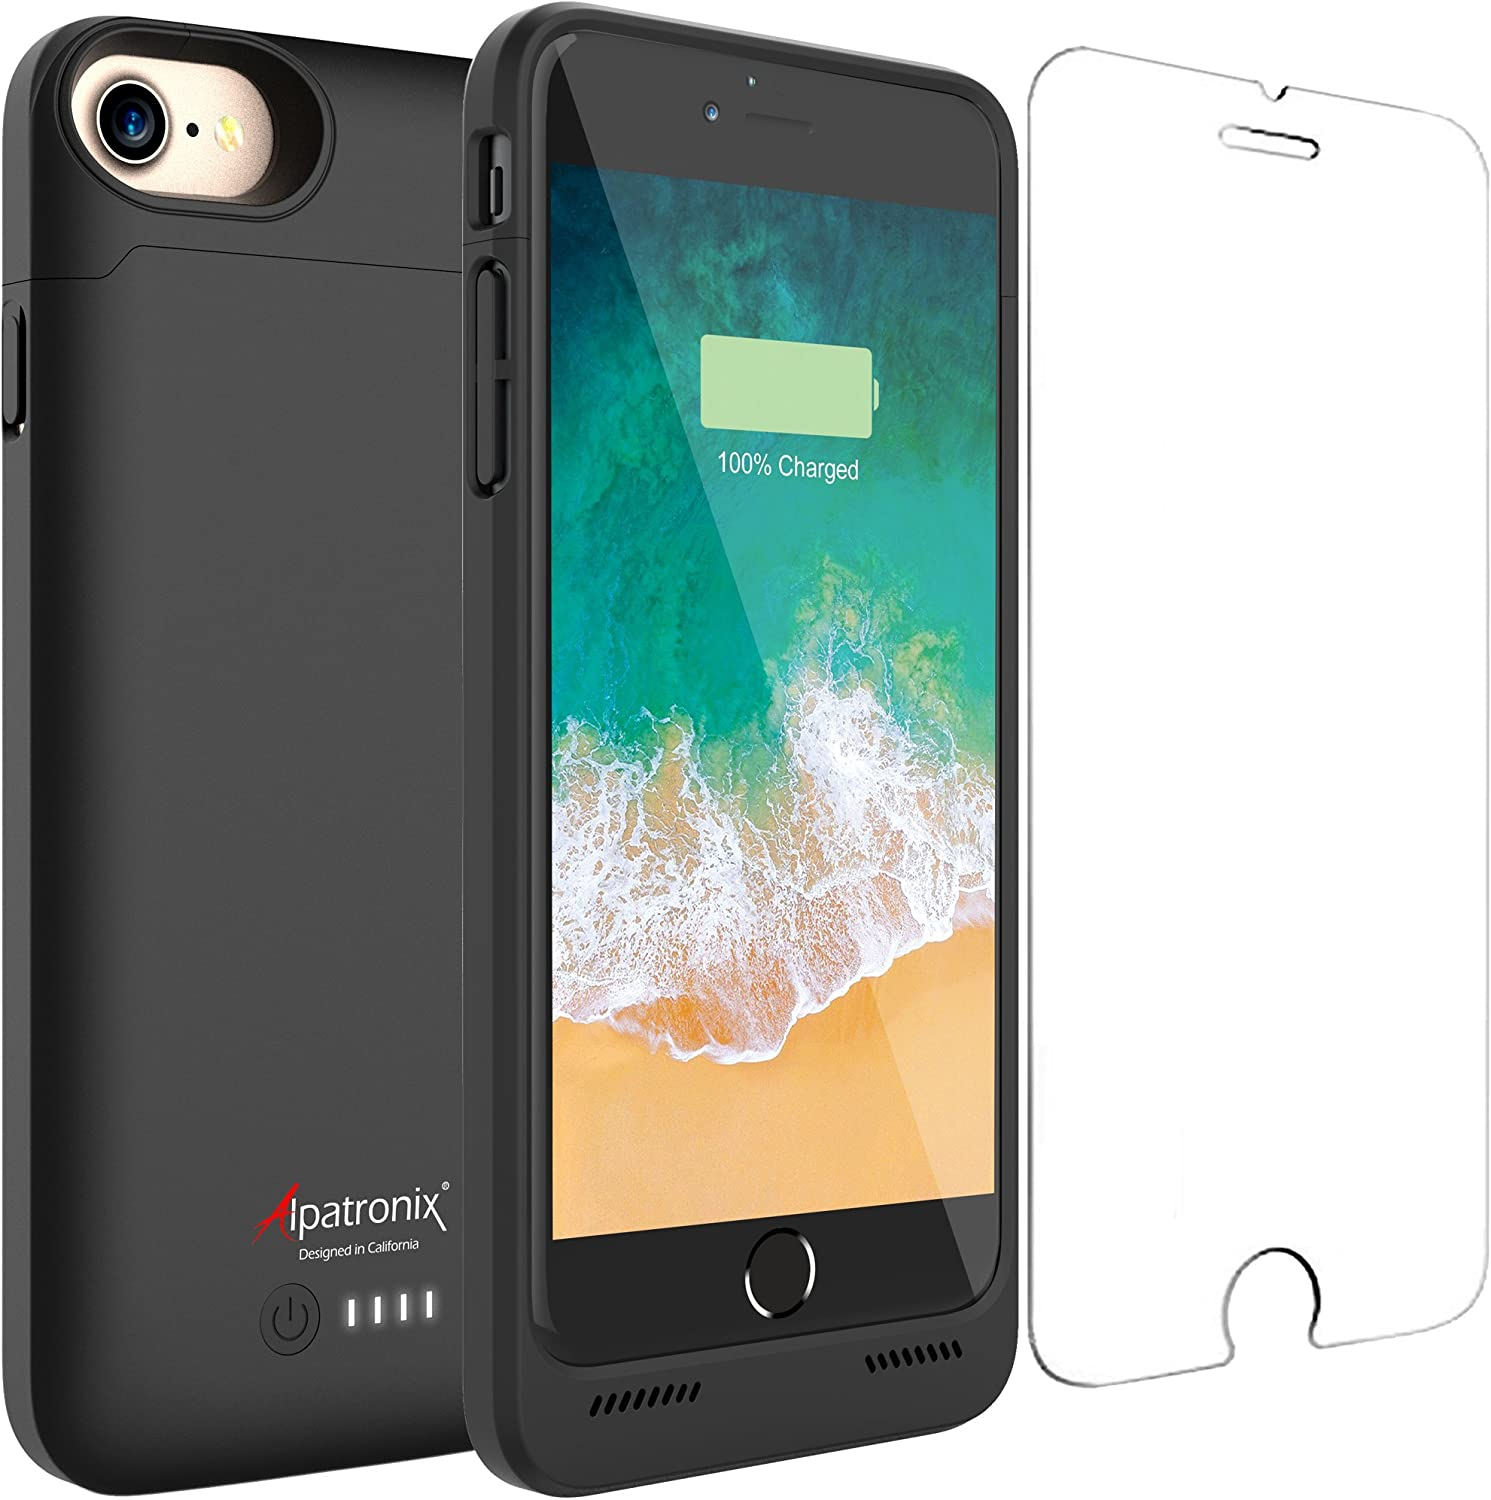 Alpatronix iPhone SE 2020/8/7 Battery Case, Slim Protective Extended Charging Case with UL-Tested Battery Compatible with New iPhone SE 2020, 8 & 7 (4.7 inch) BX180 – Black